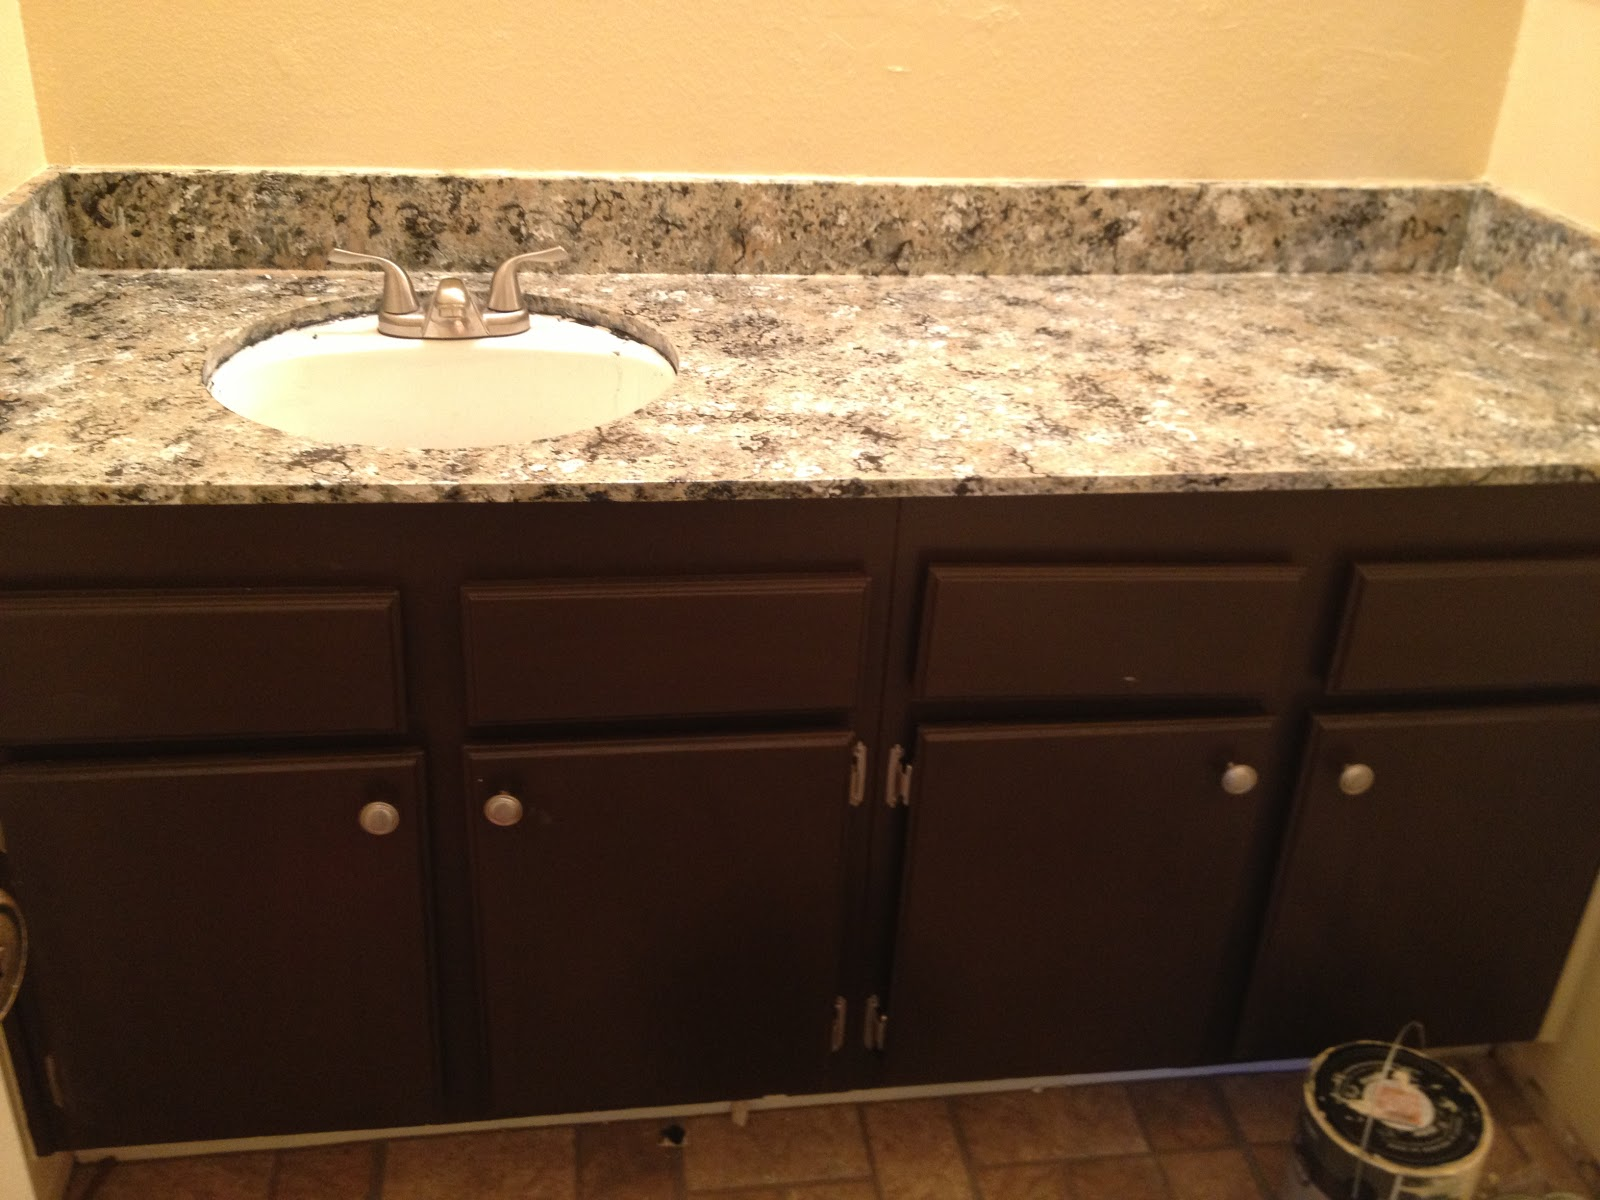 Giani Countertop Paint Veining : BEFORE - do not be fooled. This was tricky realtor photography and was ...